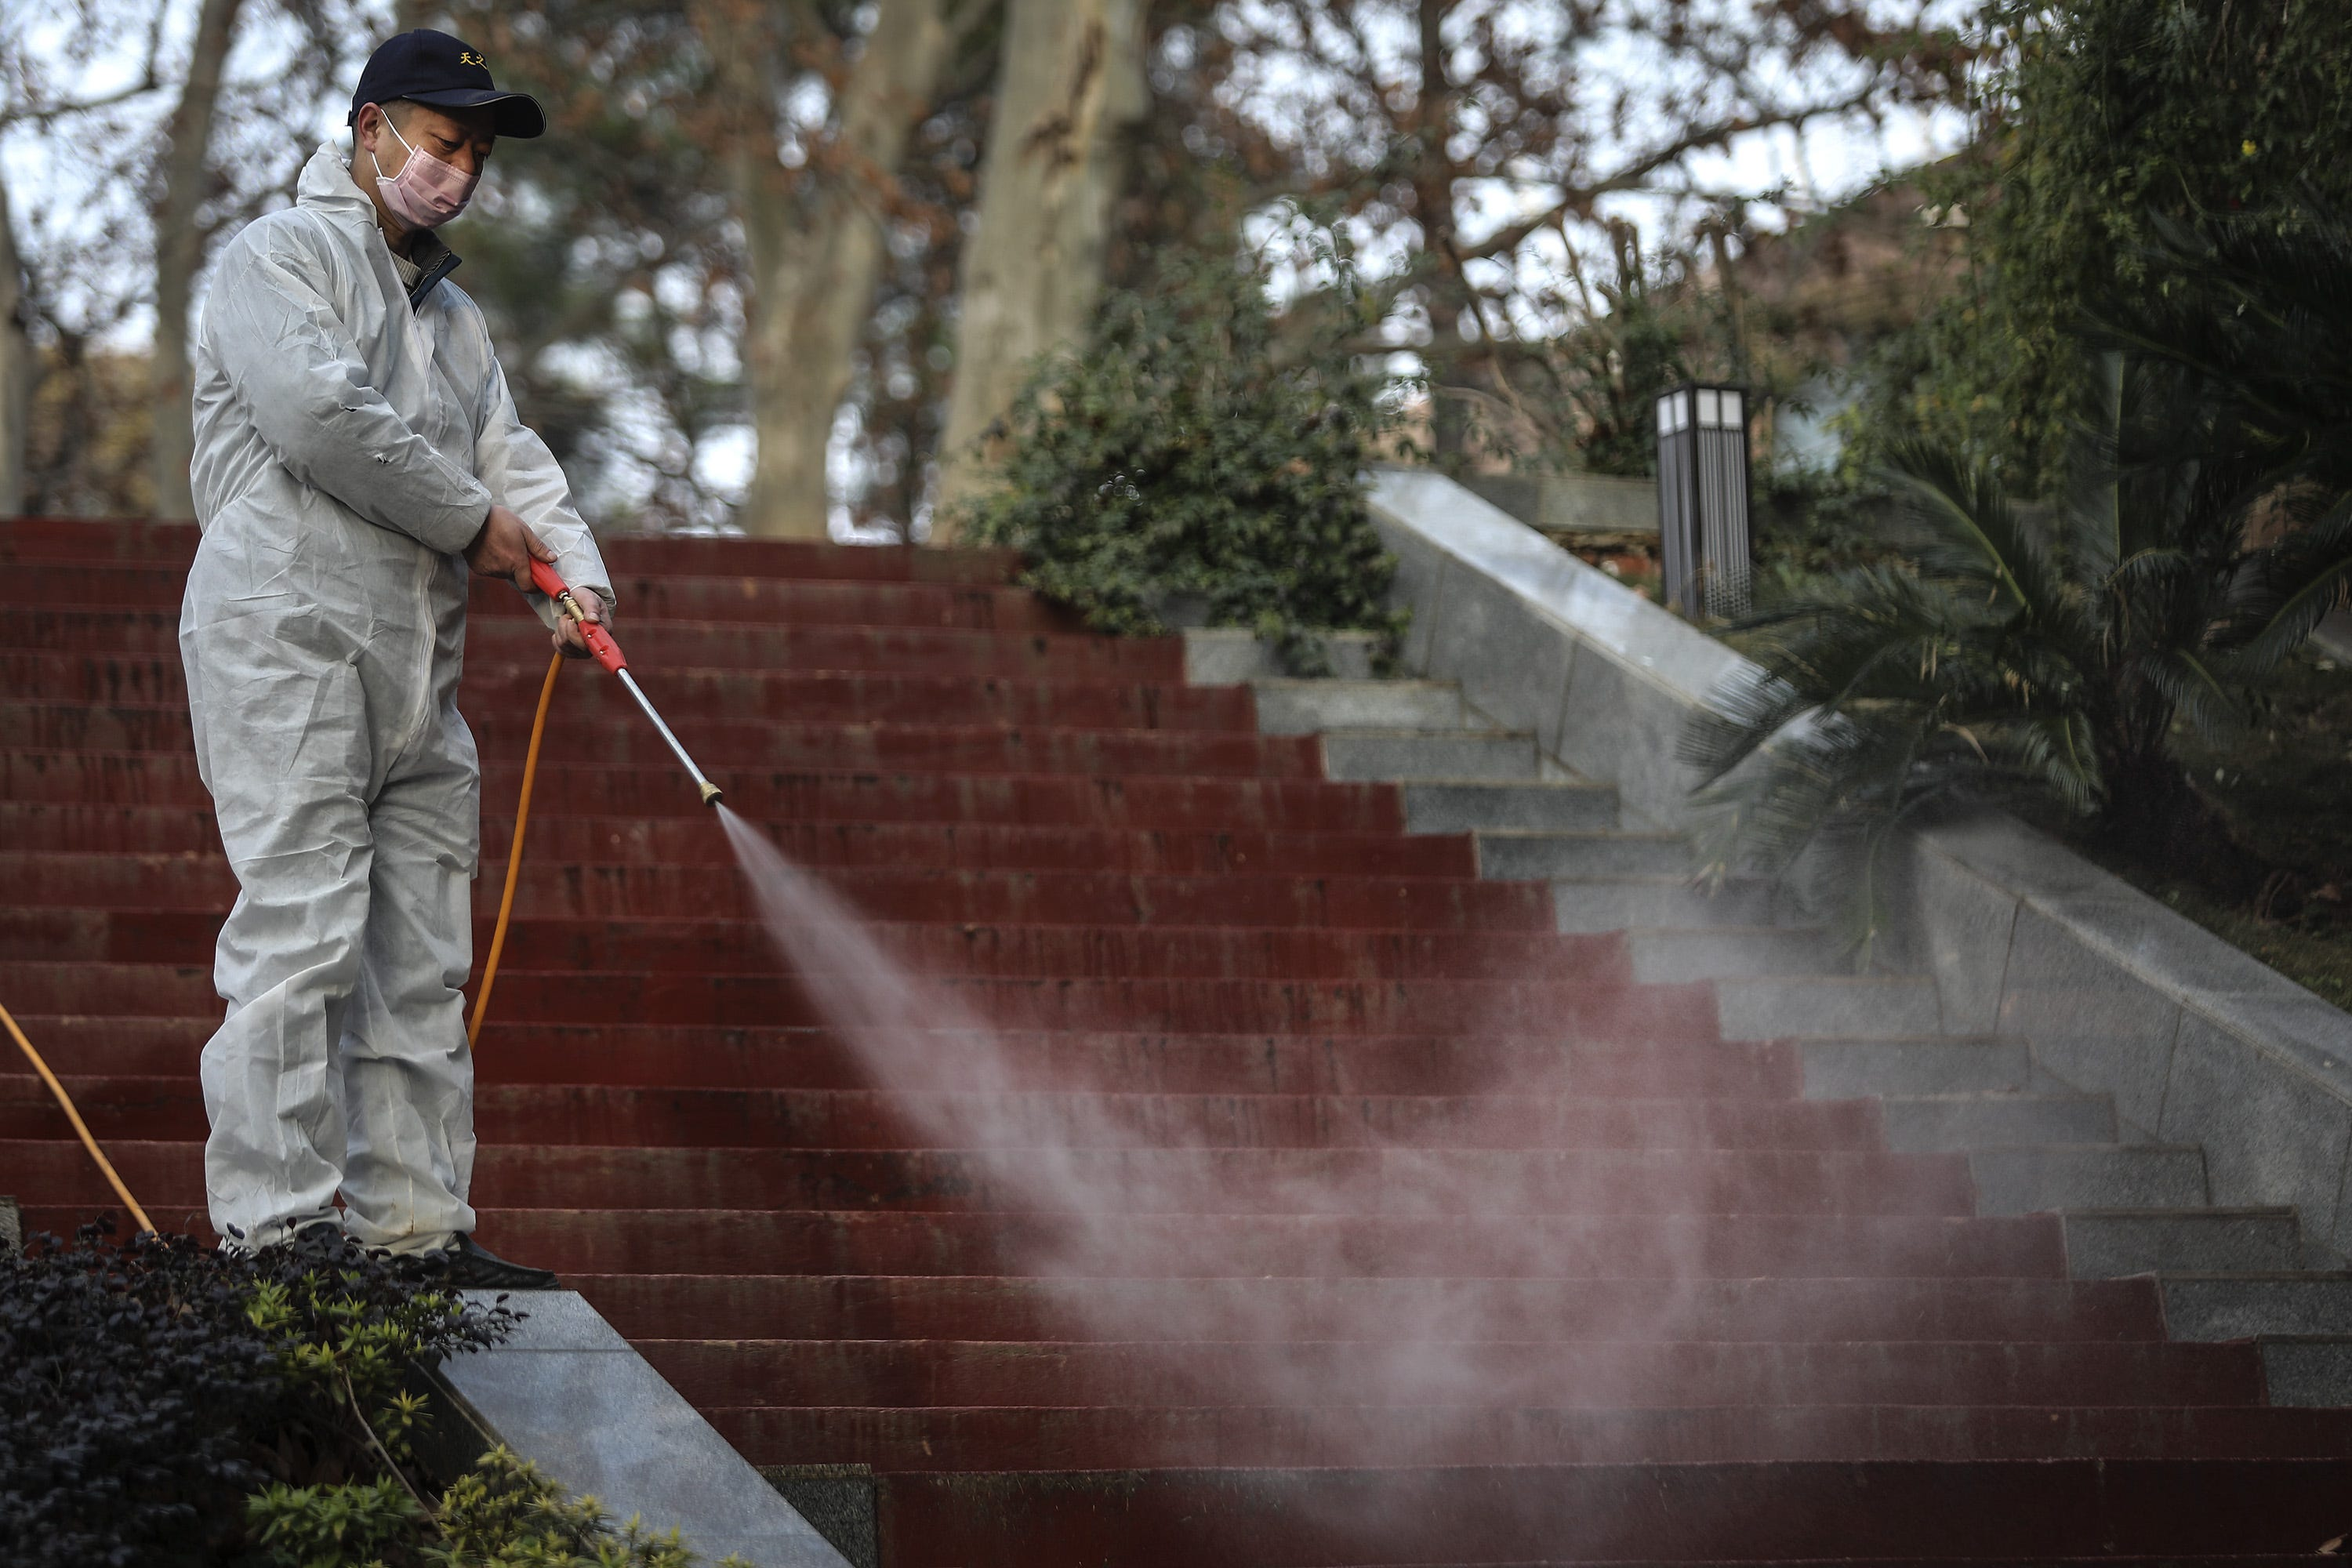 Slide 110 of 113: A man uses alcohol to disinfect the grounds nearby the Wuhan Huoshenshan hospital construction site on Jan. 28, 2020 in Wuhan, China.